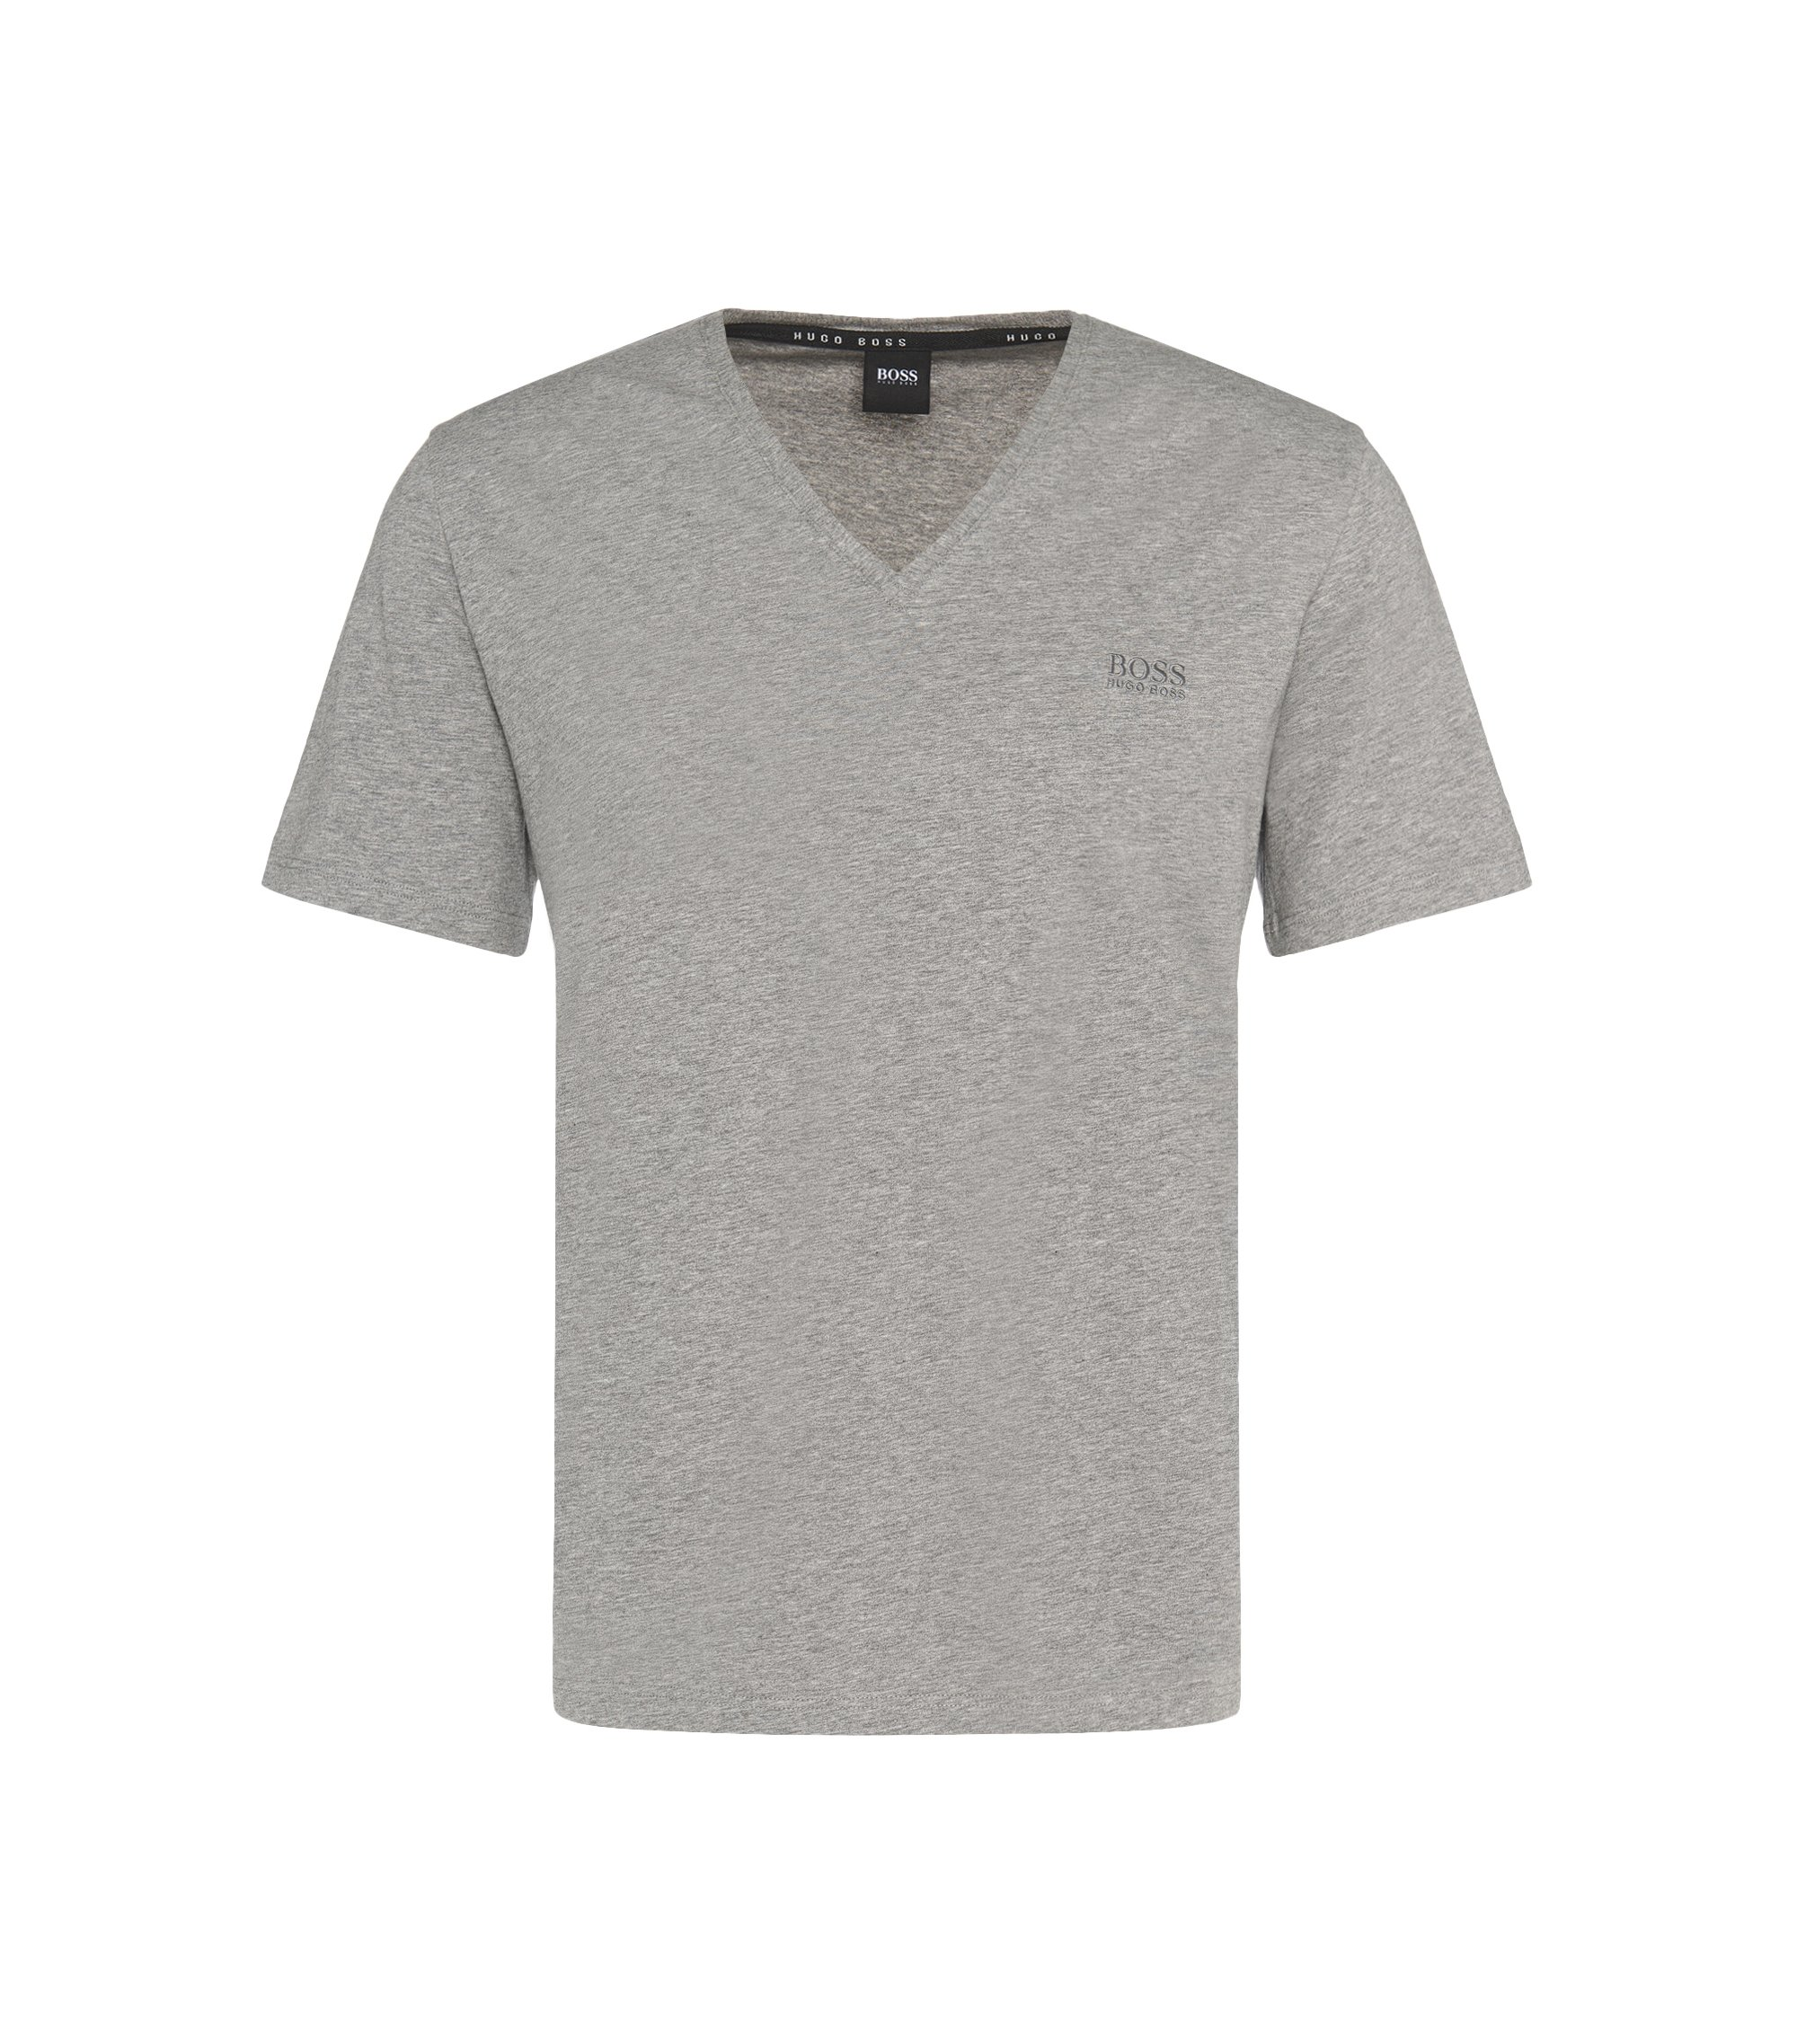 Regular Fit T-Shirt aus elastischem Baumwoll-Mix: 'Shirt VN' , Grau